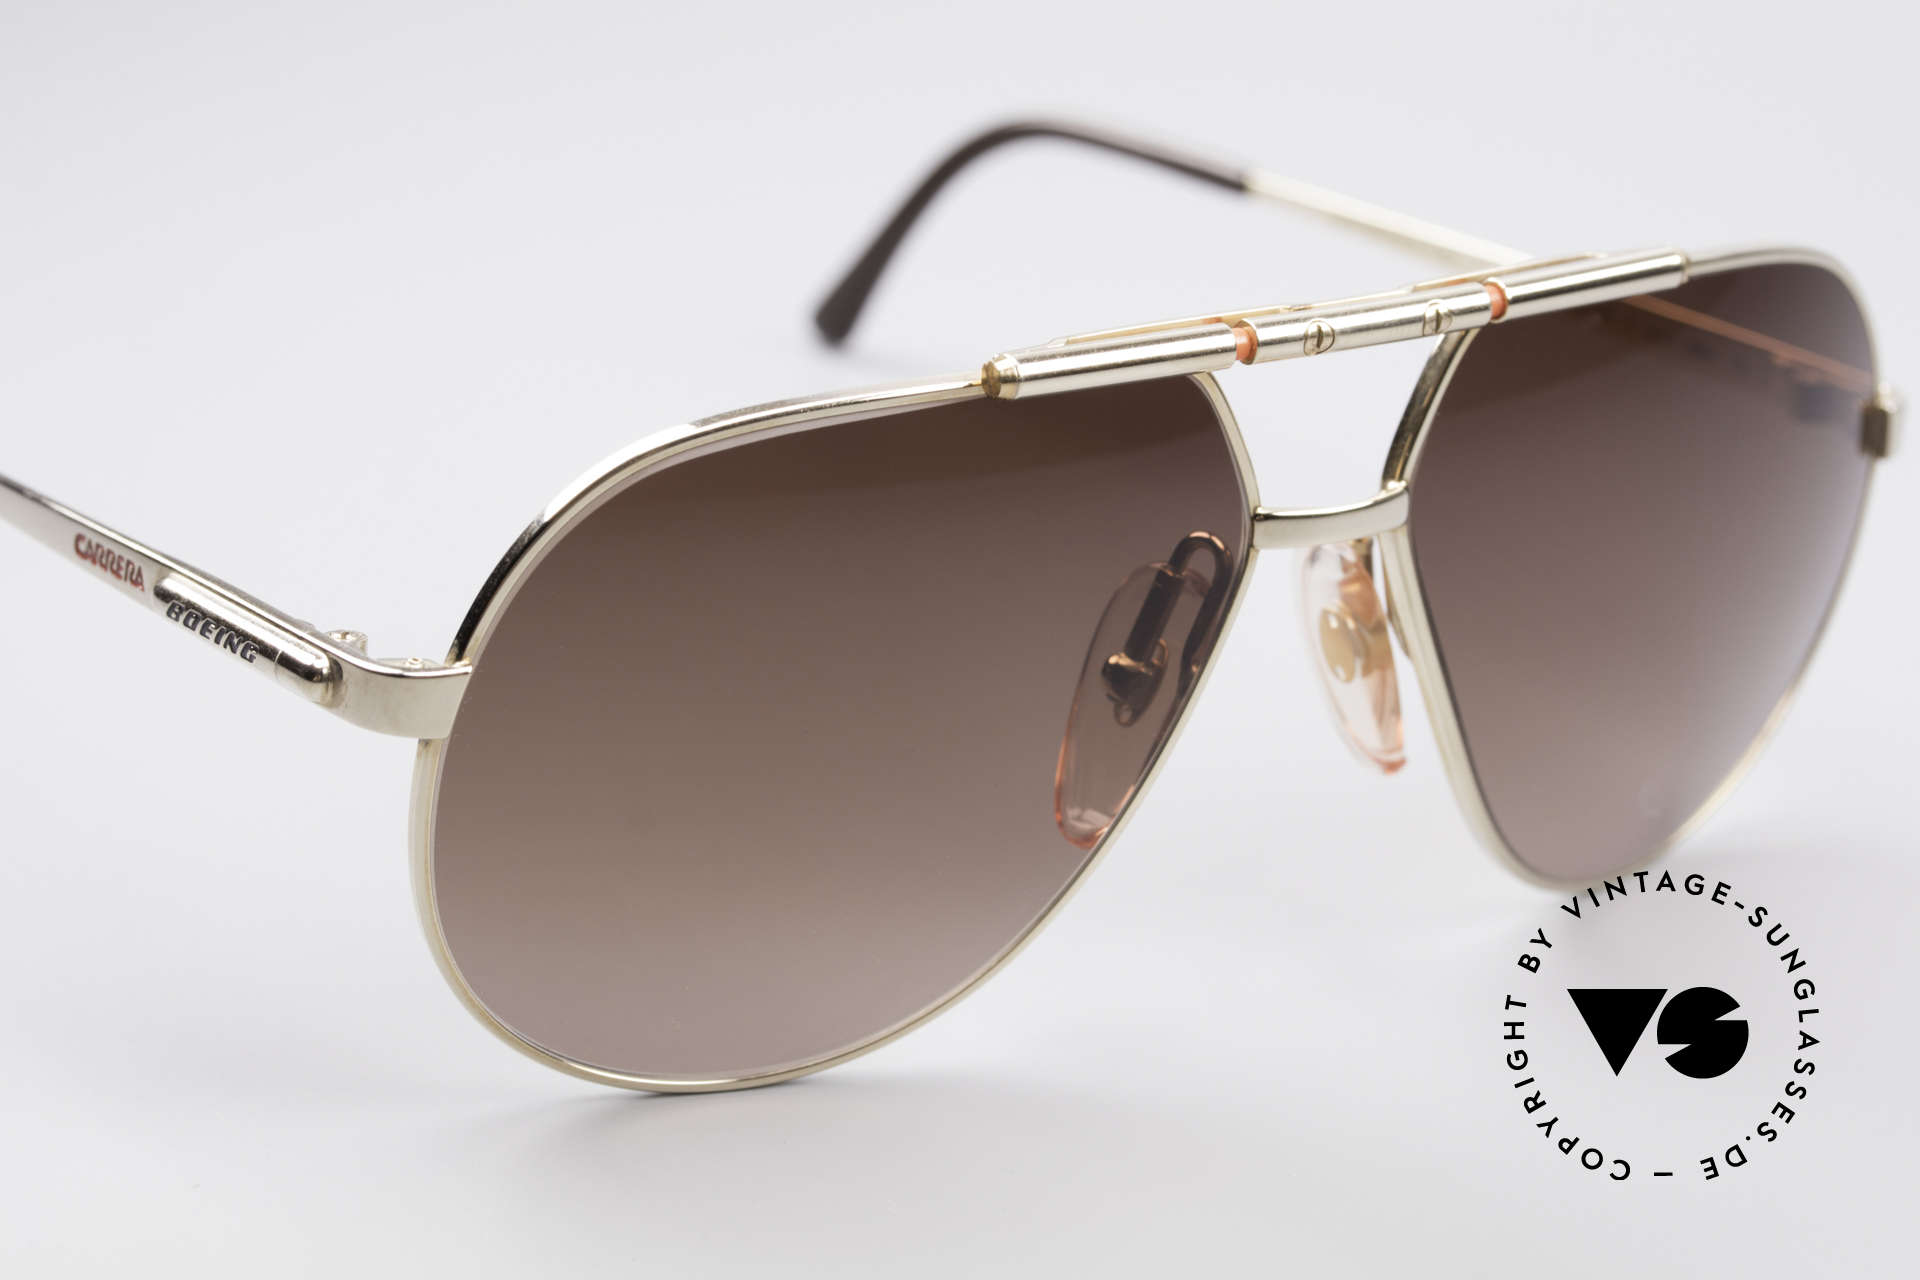 Boeing 5732 High Tech 80's Pilots Shades, new old stock (like all our BOEING aviator shades), Made for Men and Women